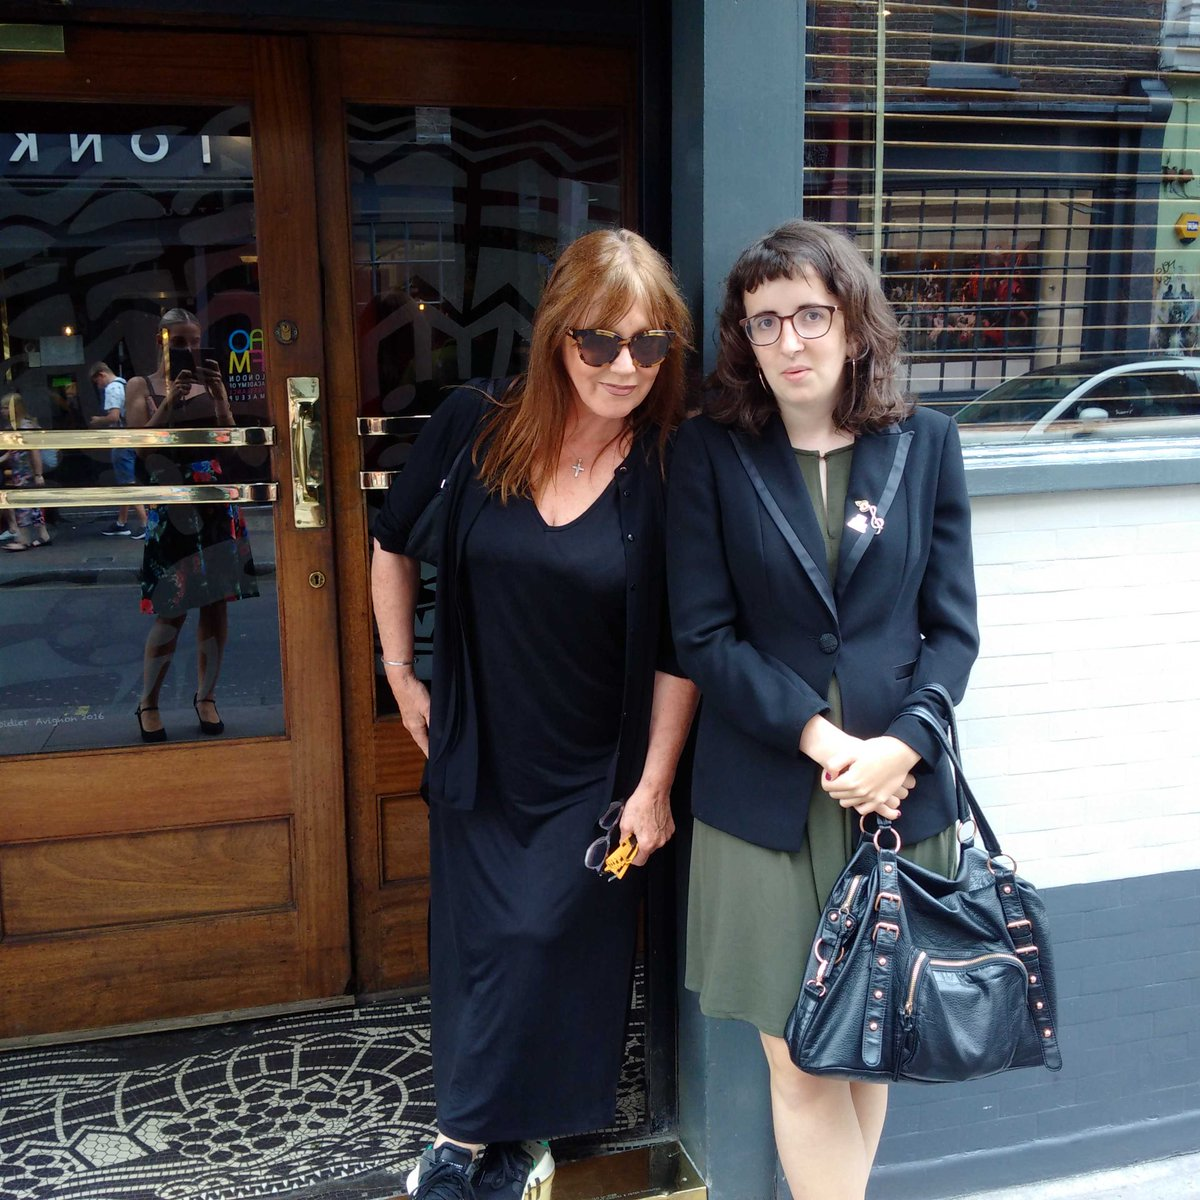 Two white women stand outside a blue building with a brown door. The woman on the left wears a black dress with dyed brunette hair. The younger, on the right, wears a green dress, black blazer, and holds a black bag on her left arm.